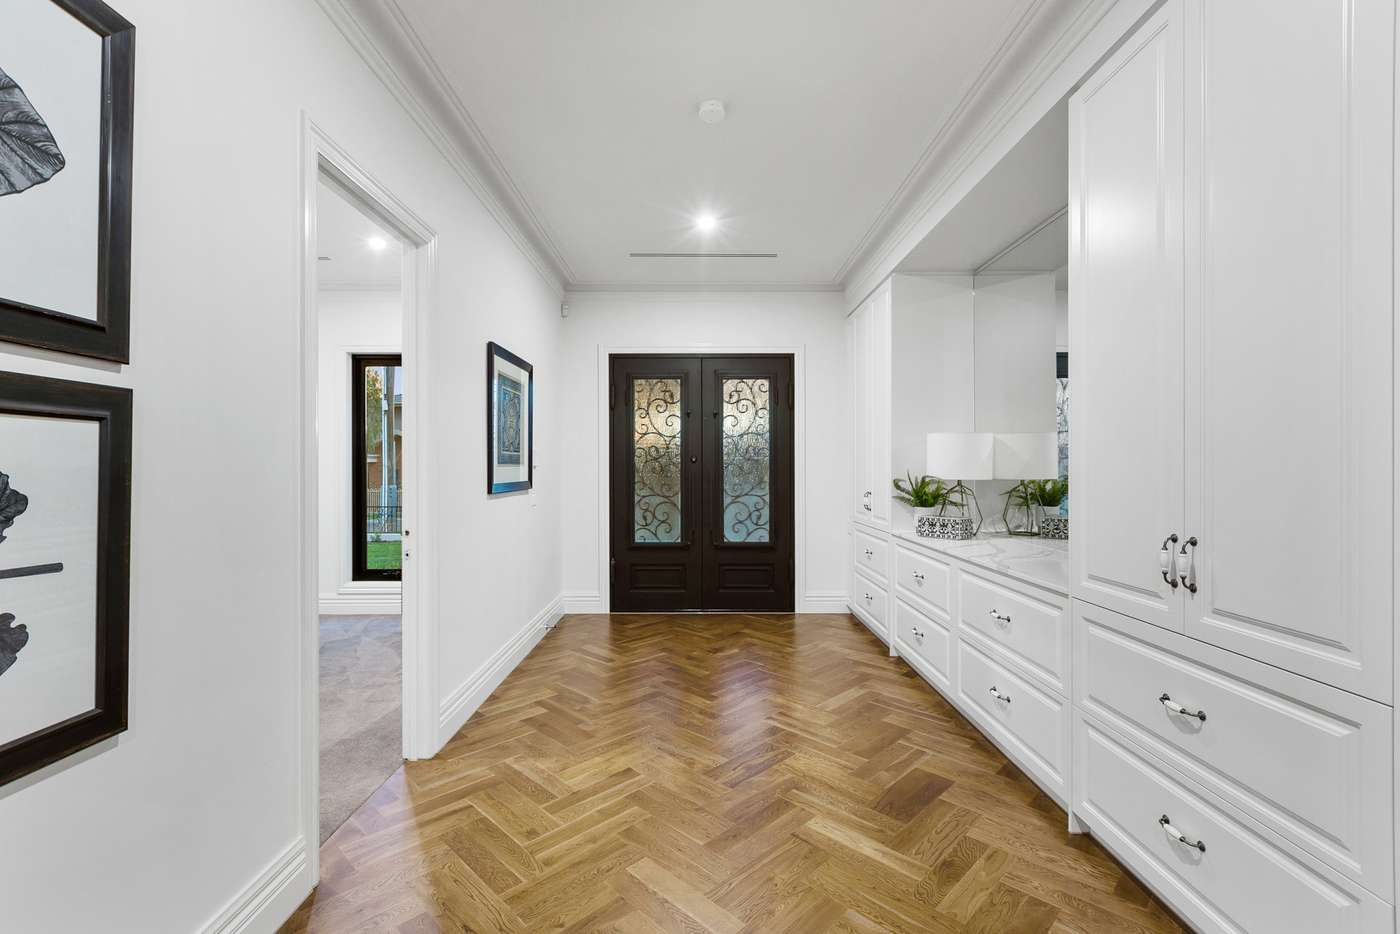 Fifth view of Homely house listing, 8 Fraser Street, Glen Waverley VIC 3150